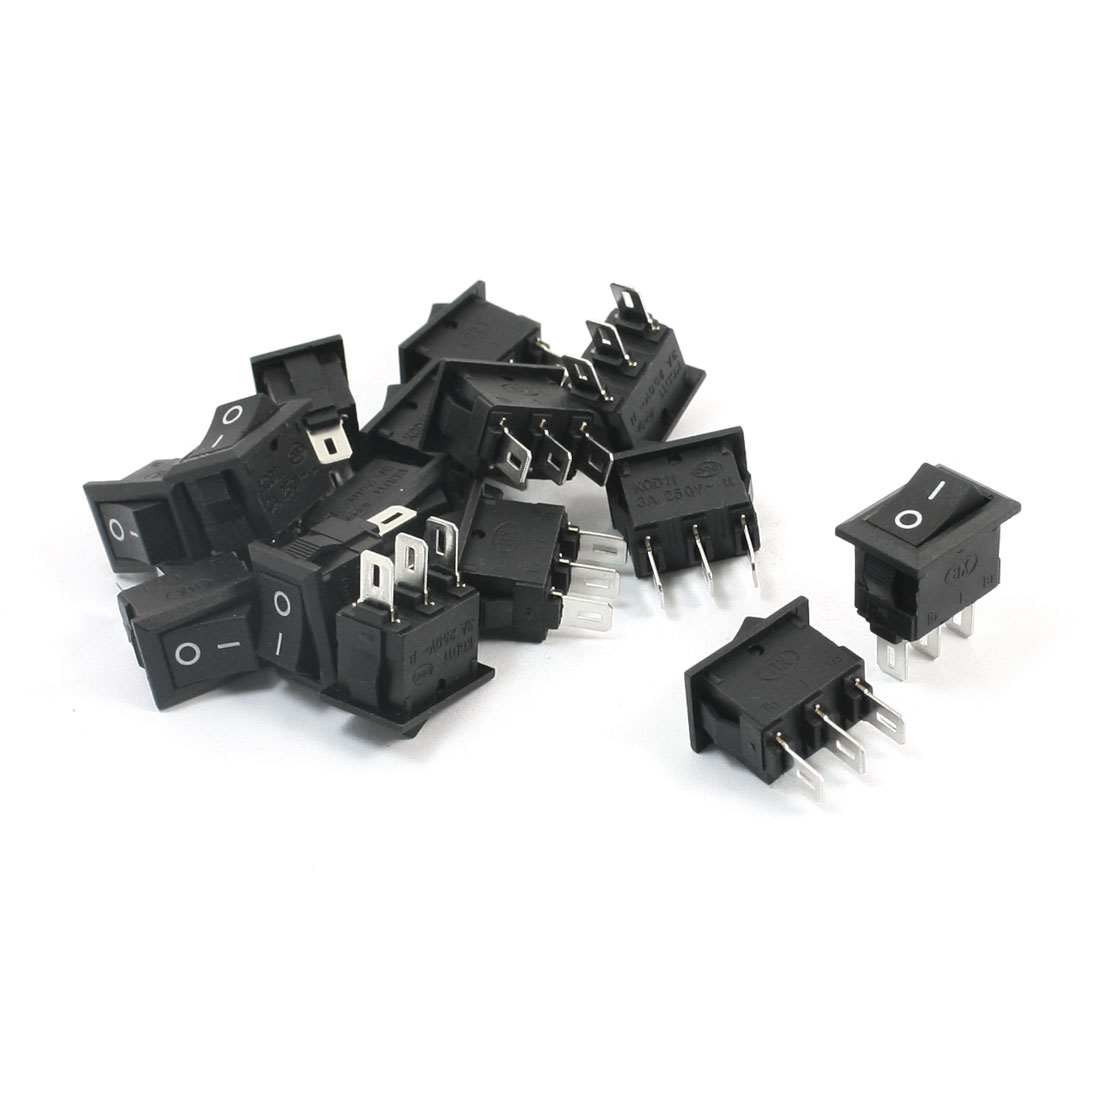 15Pcs SPDT 2 Position ON/OFF 3 Soldering Pin Snap In Black Button Square Boat Rocker Switch AC250V 3A 10mmx15mm